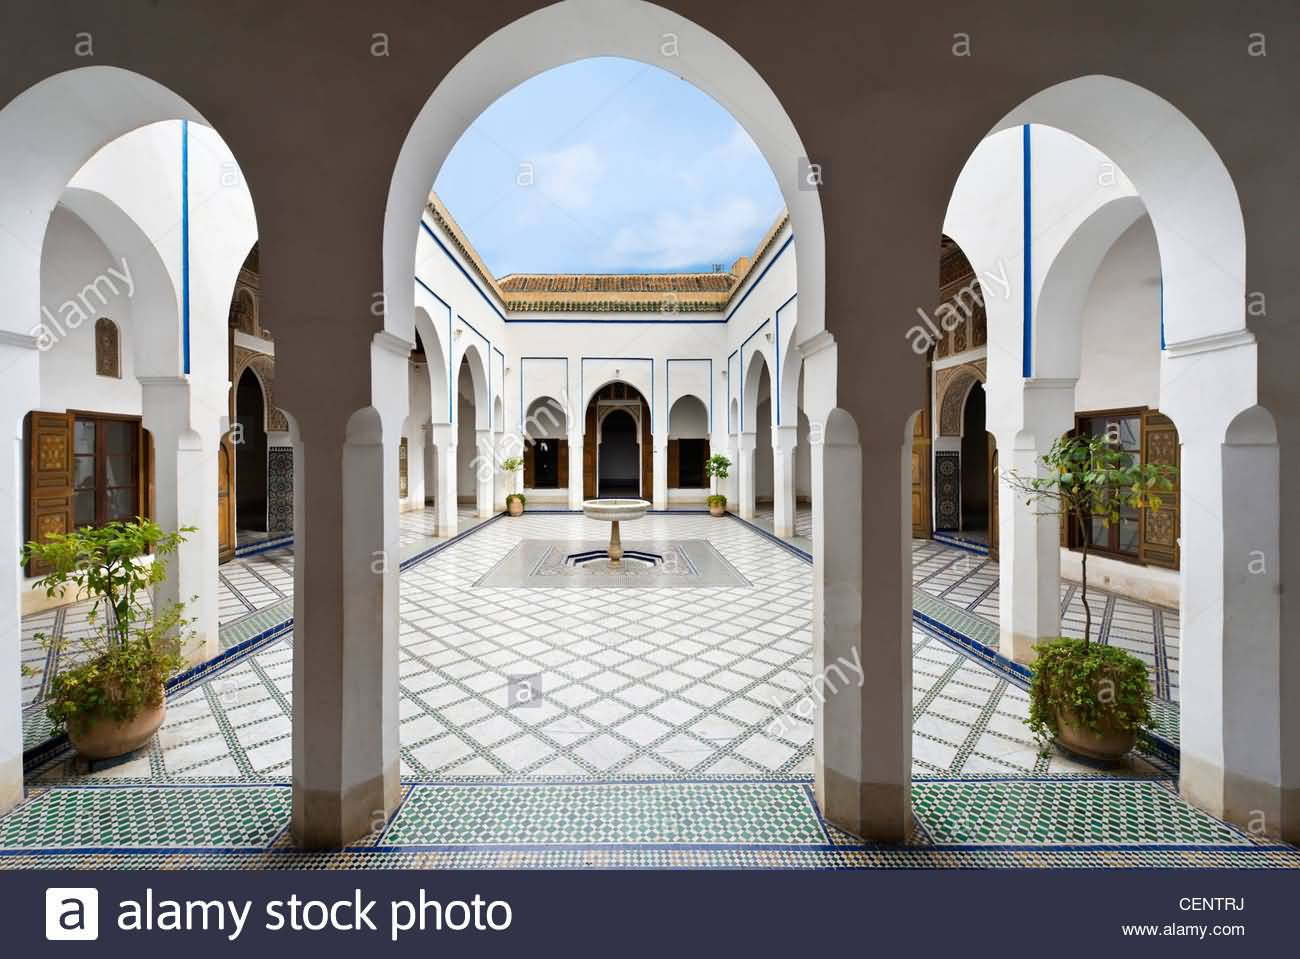 55 Incredible Bahia Palace In Marrakesh Morocco Pictures